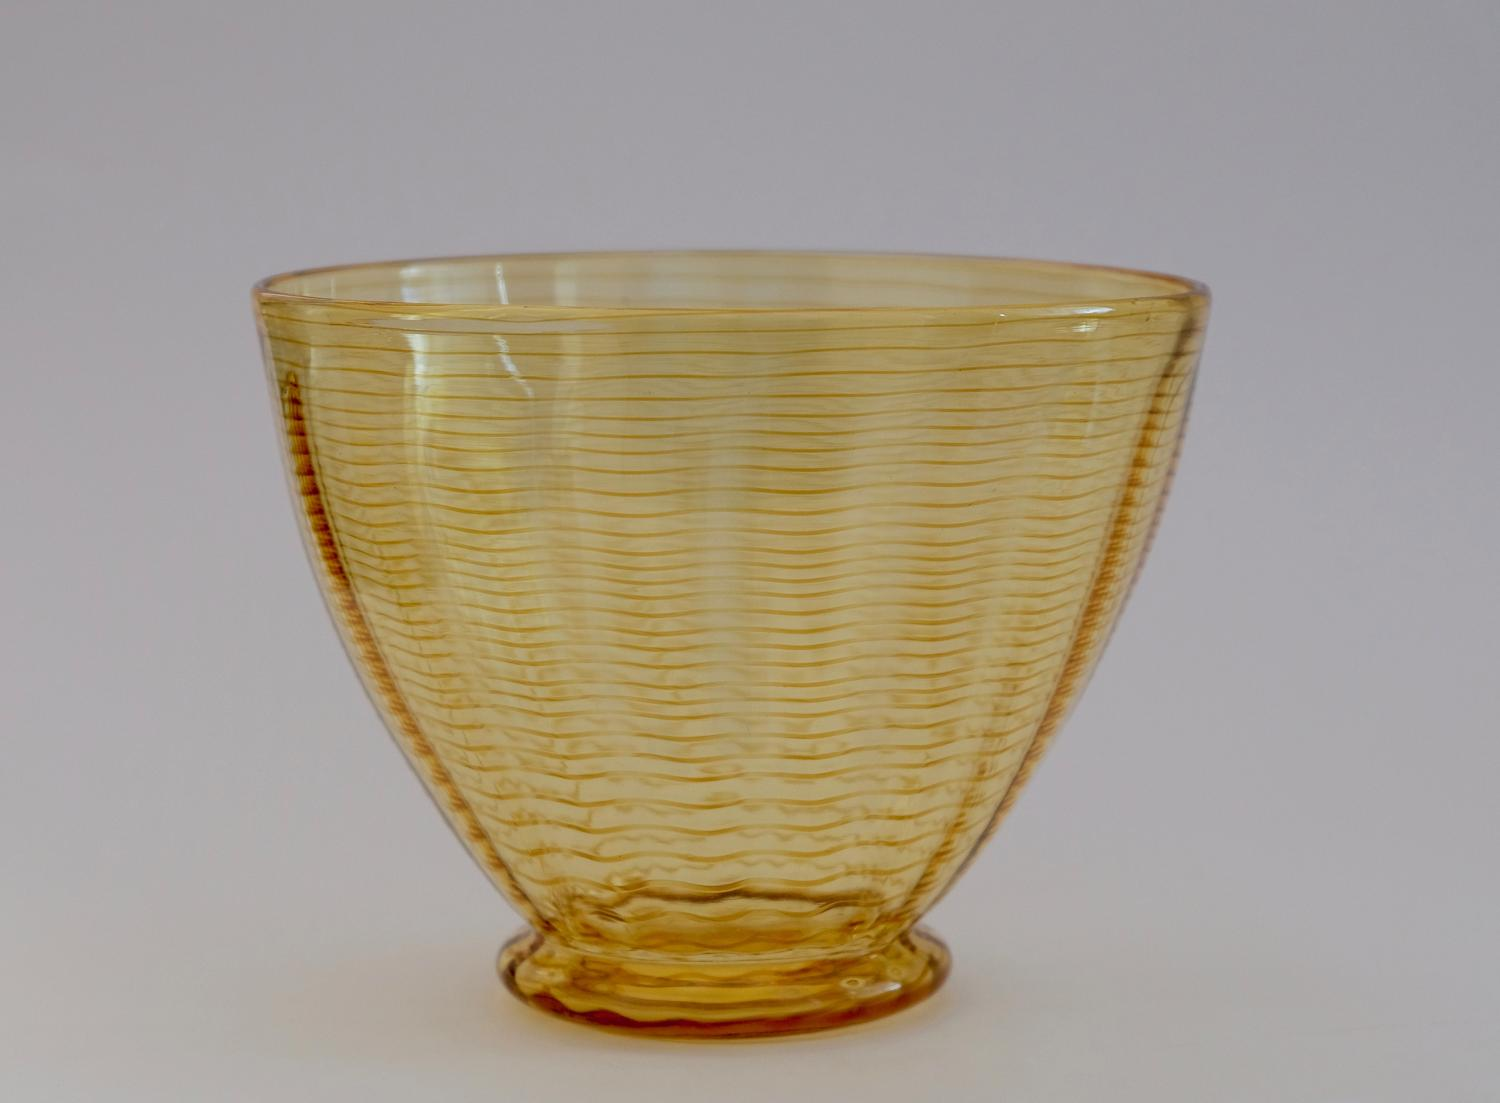 Threaded vase designed by William Butler 1930